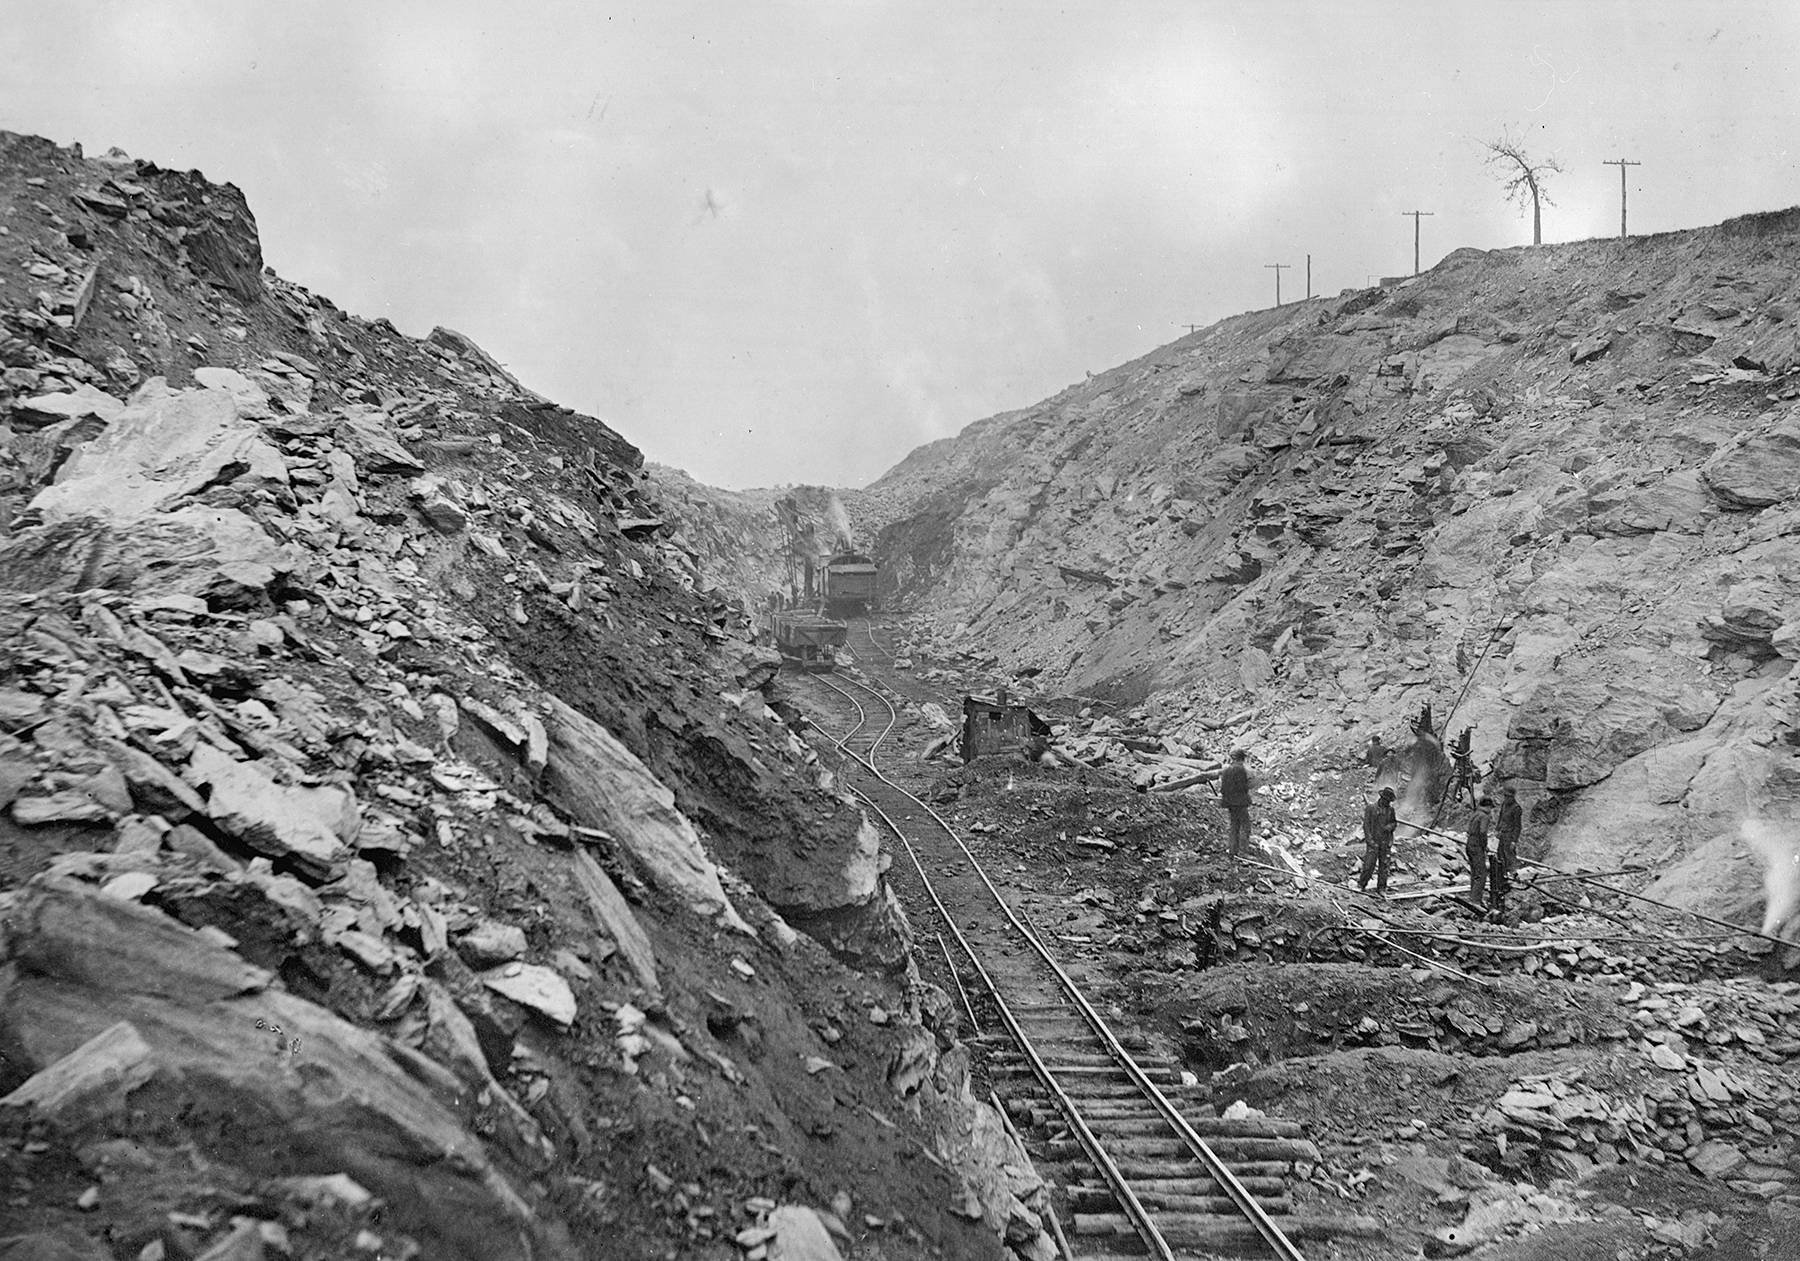 One of the deep cuts near Quarryville takes shape as crews blast and dig their way through solid rock to maintain the 1% maximum ruling grade on the A&S branch. Kline Collection, Railroad Museum of Pennsylvania, PMHC